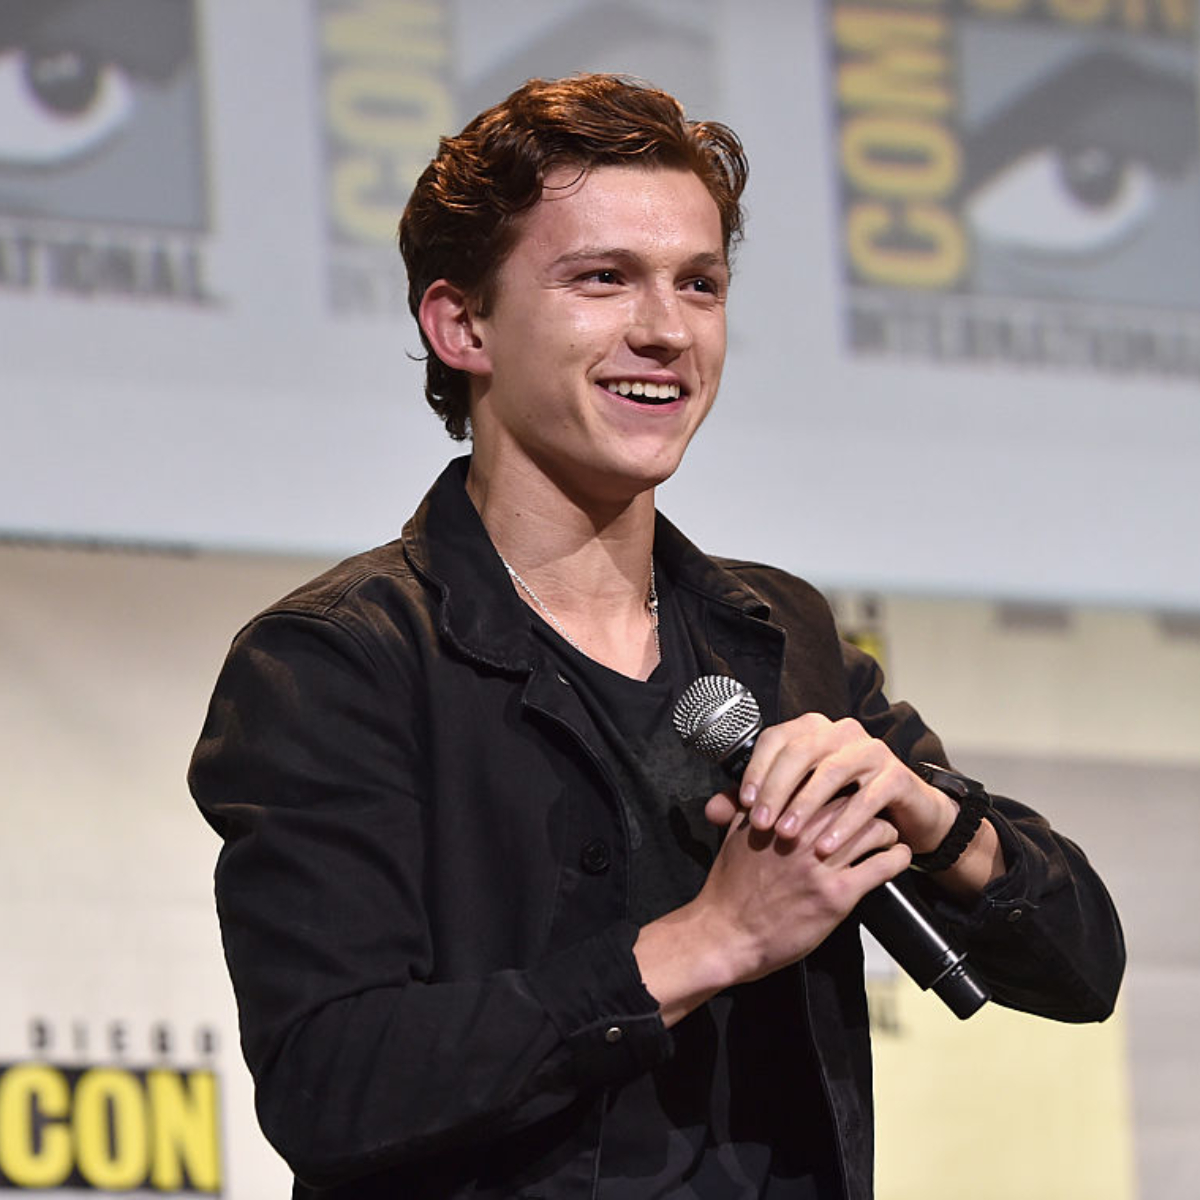 Spider Man 3: Tom Holland batting for THIS Avengers: Endgame actor to appear in Far From Home sequel?